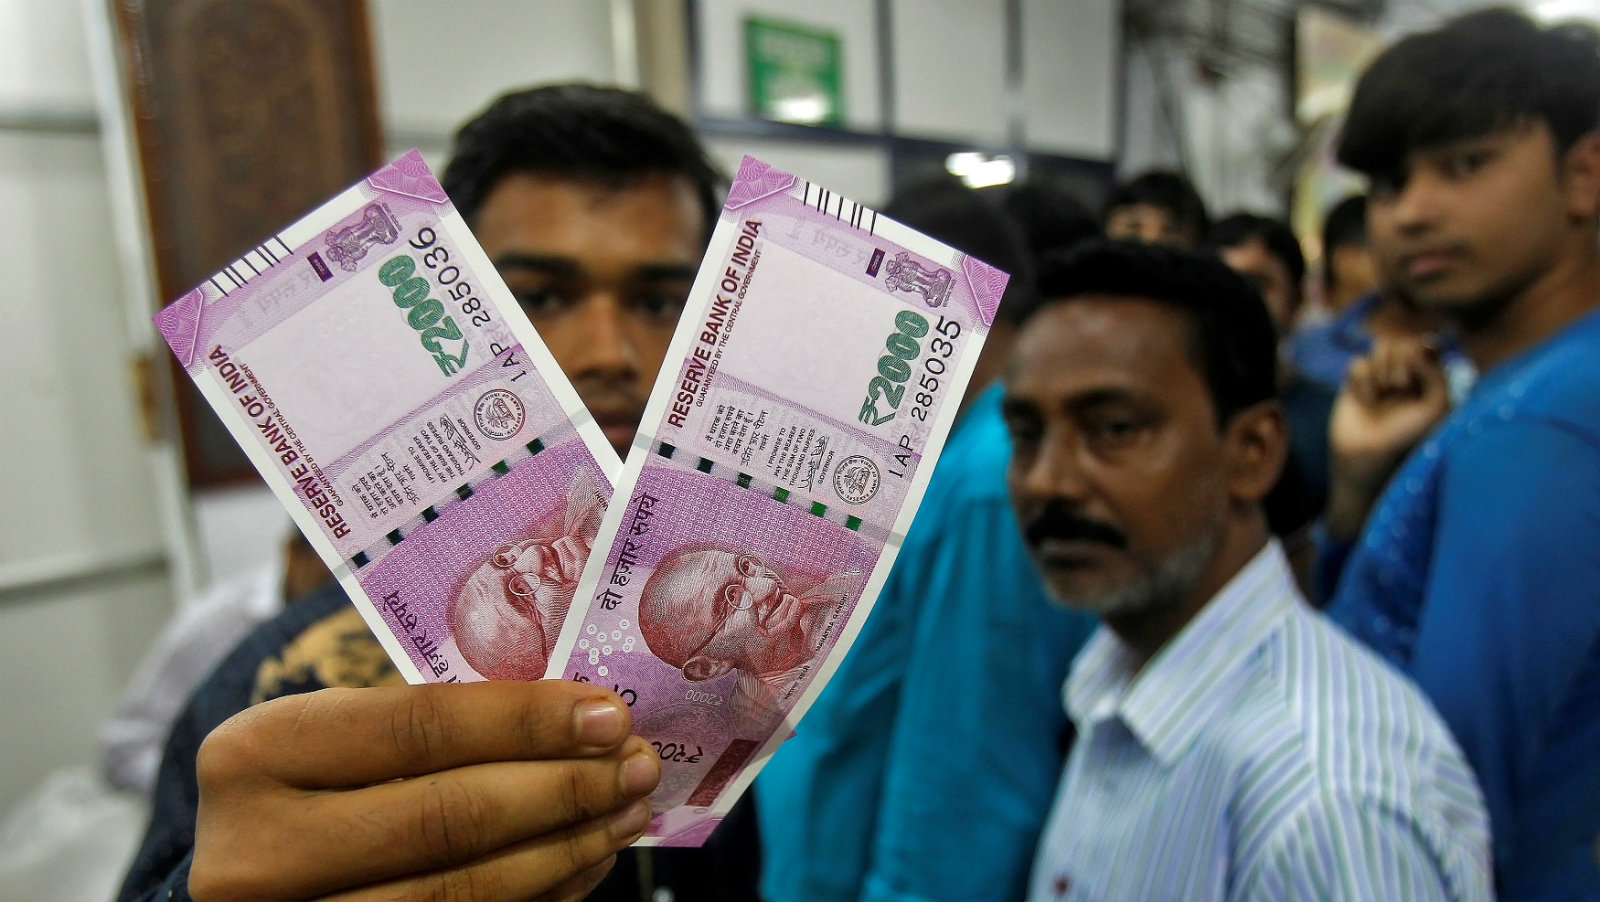 India's dream of going cashless is just that…a dream